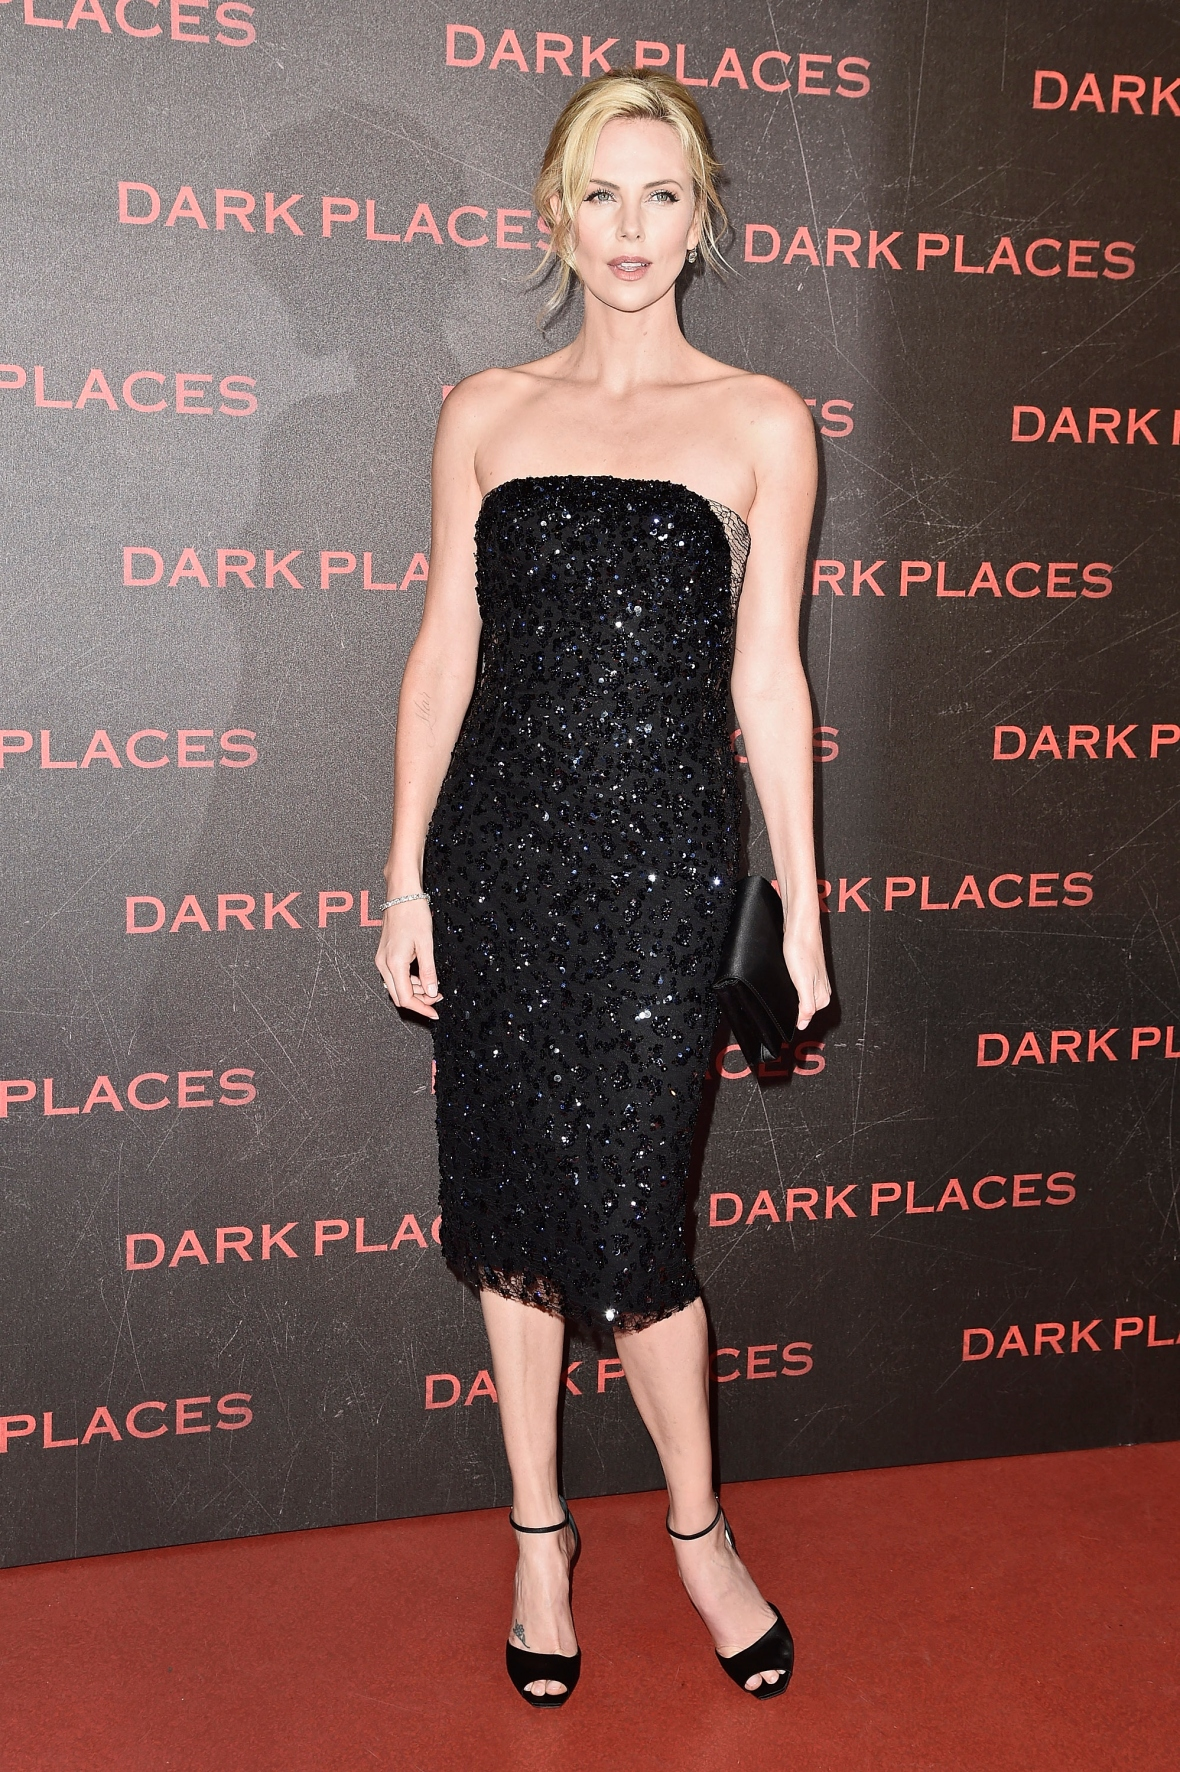 charlize theron dark places